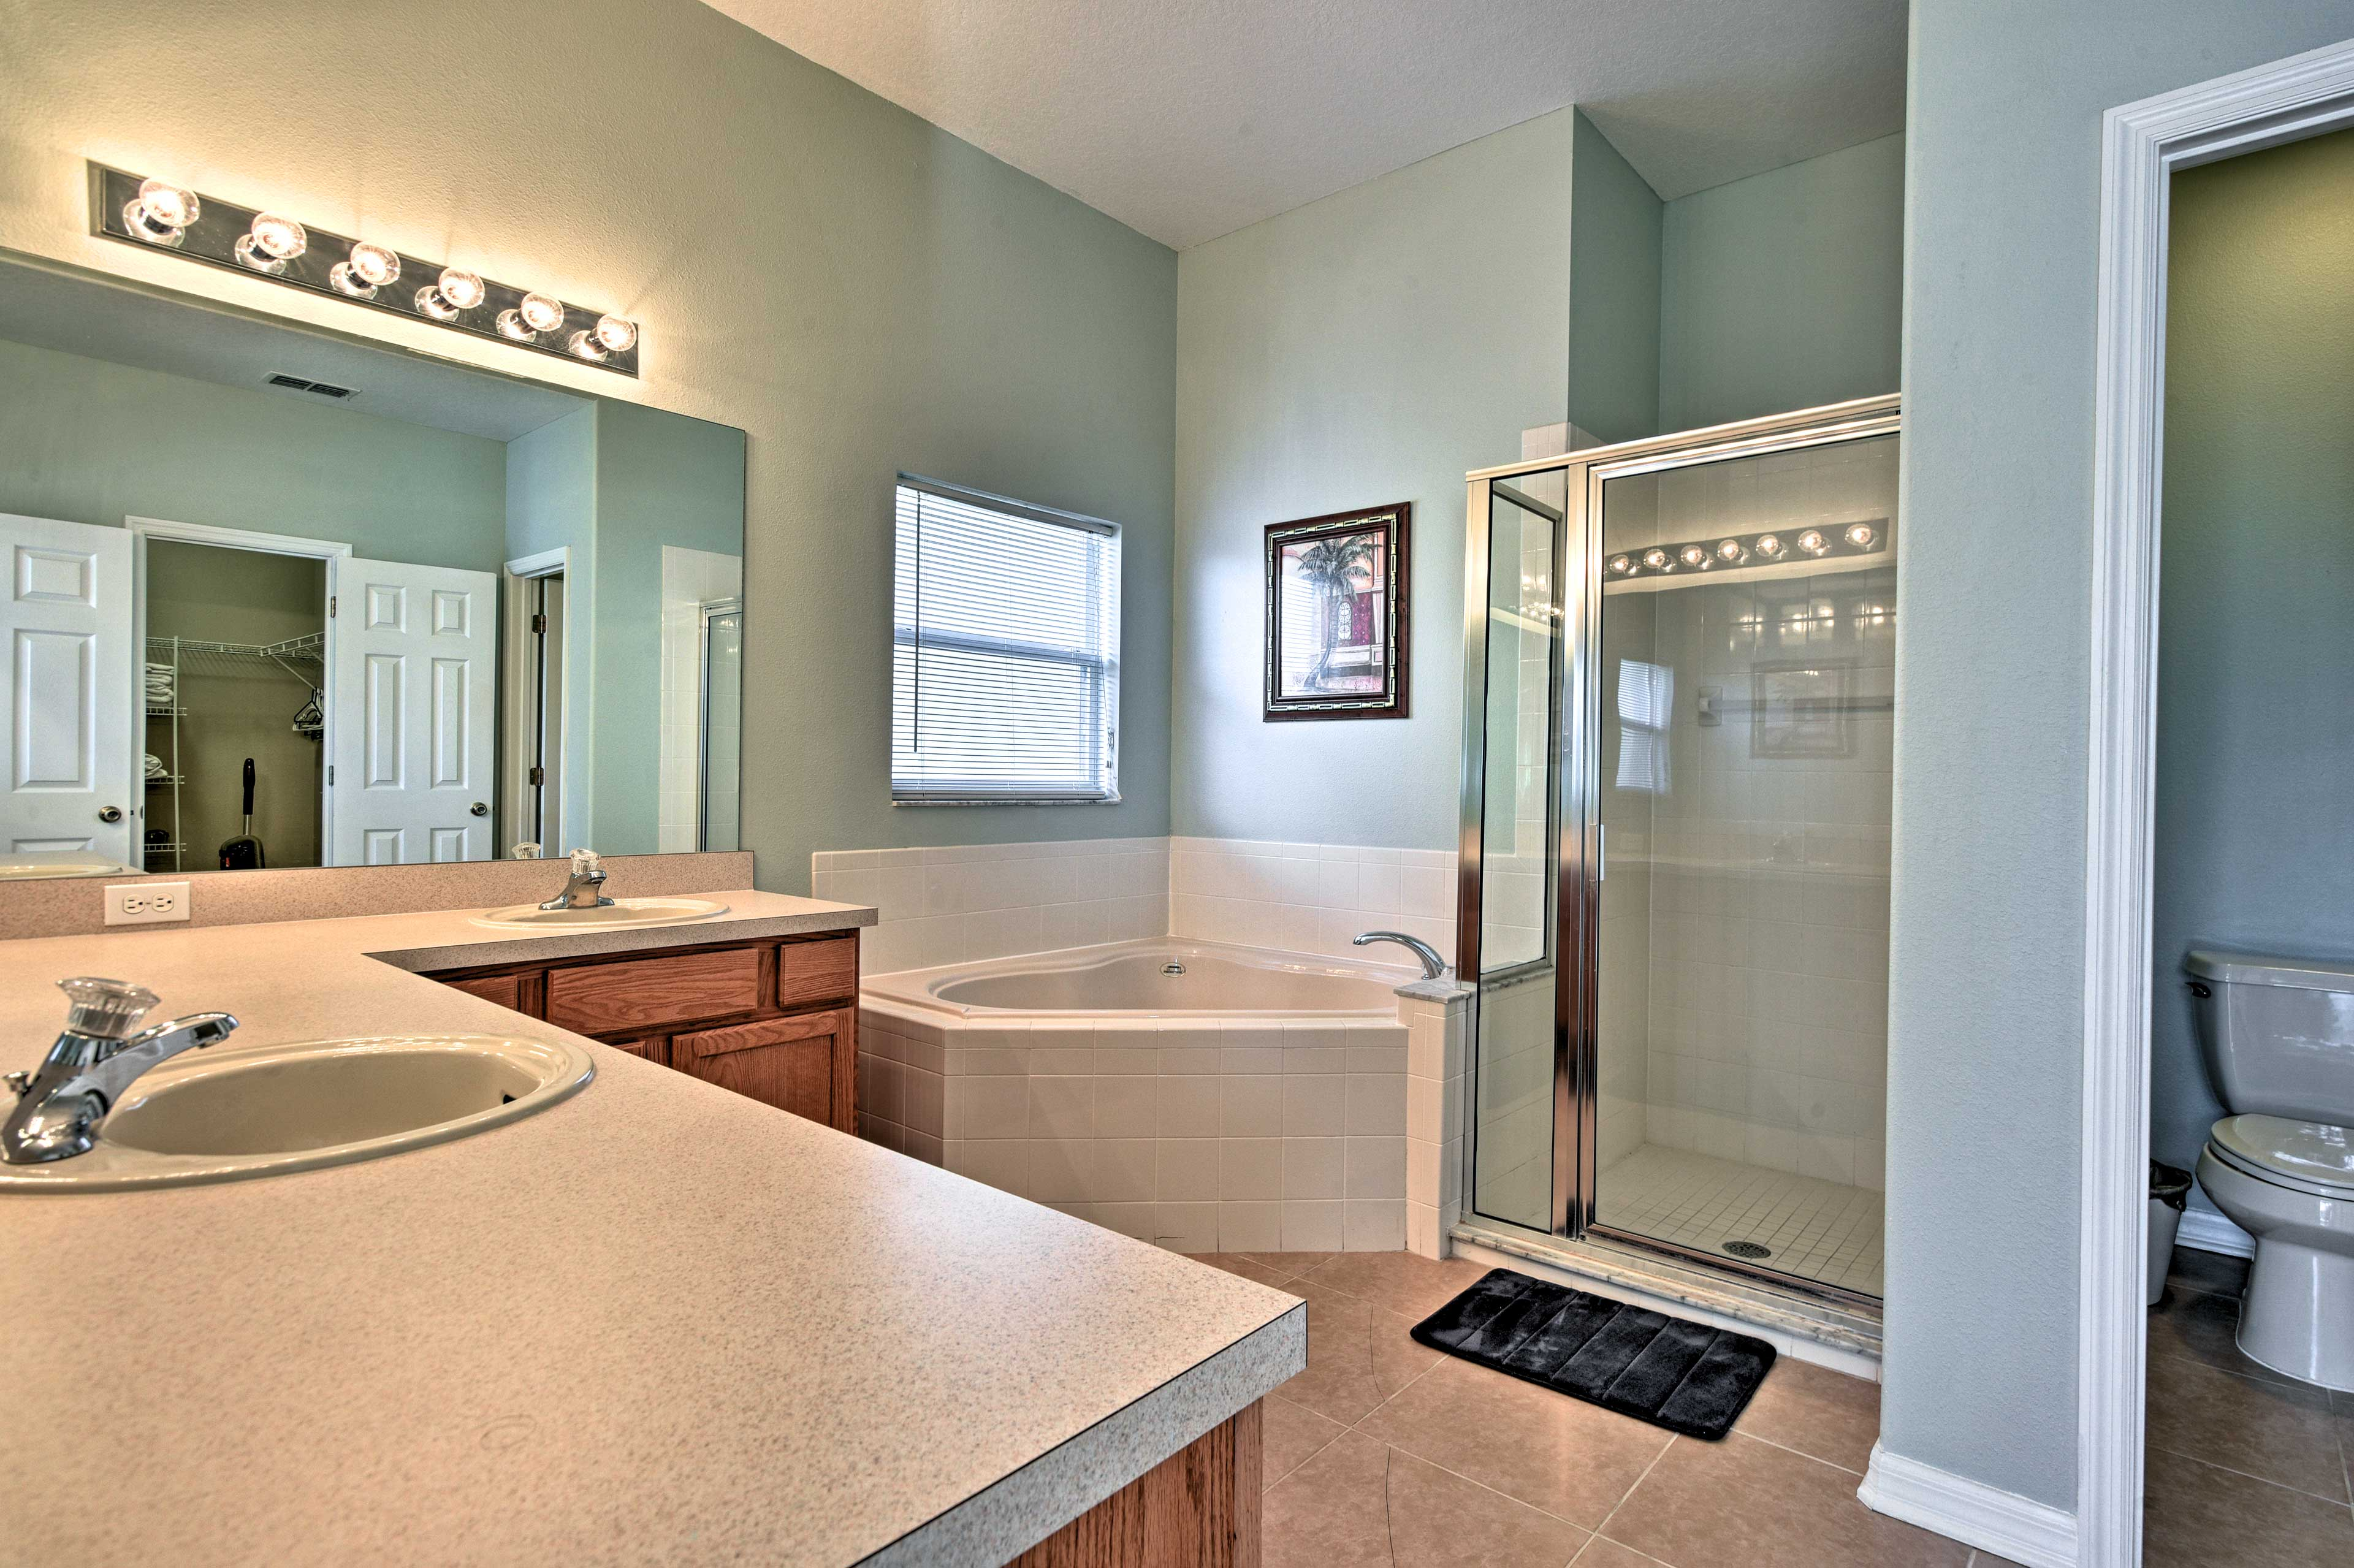 Rise and shine with a refreshing rinse in this full en-suite bathroom.